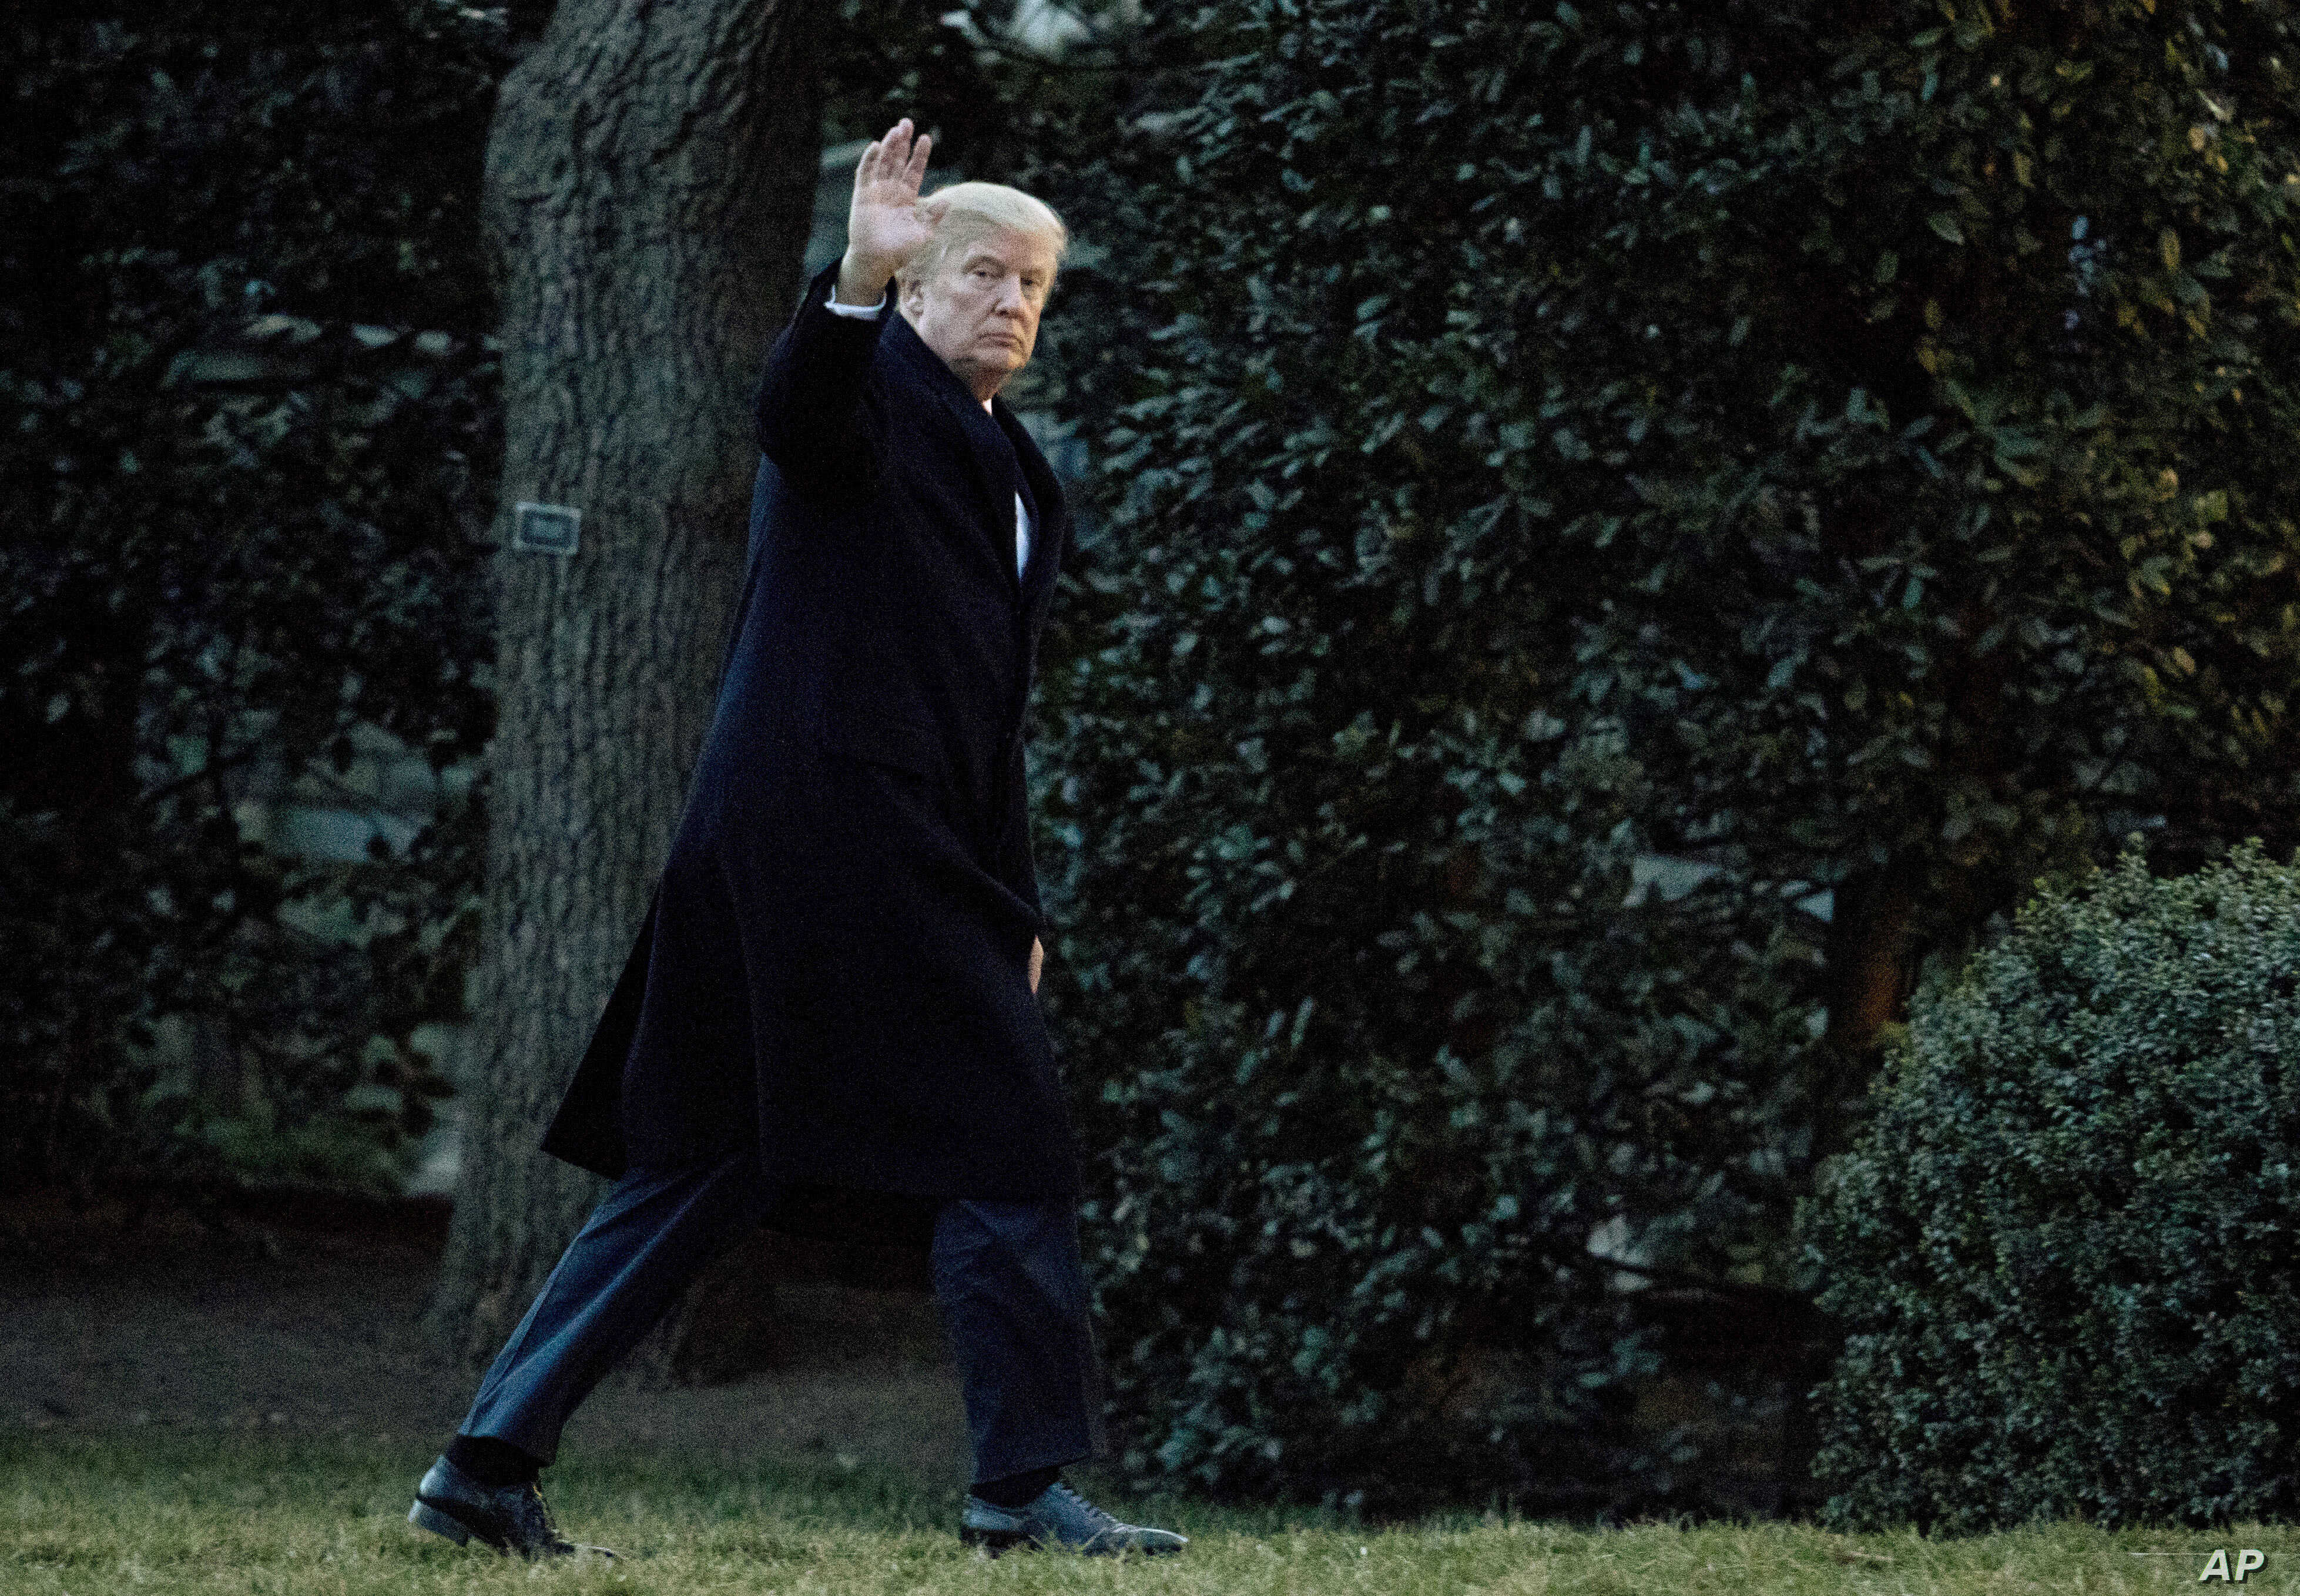 President Donald Trump waves as he arrives at the White House in Washington, March 5, 2017, from a trip to Florida.